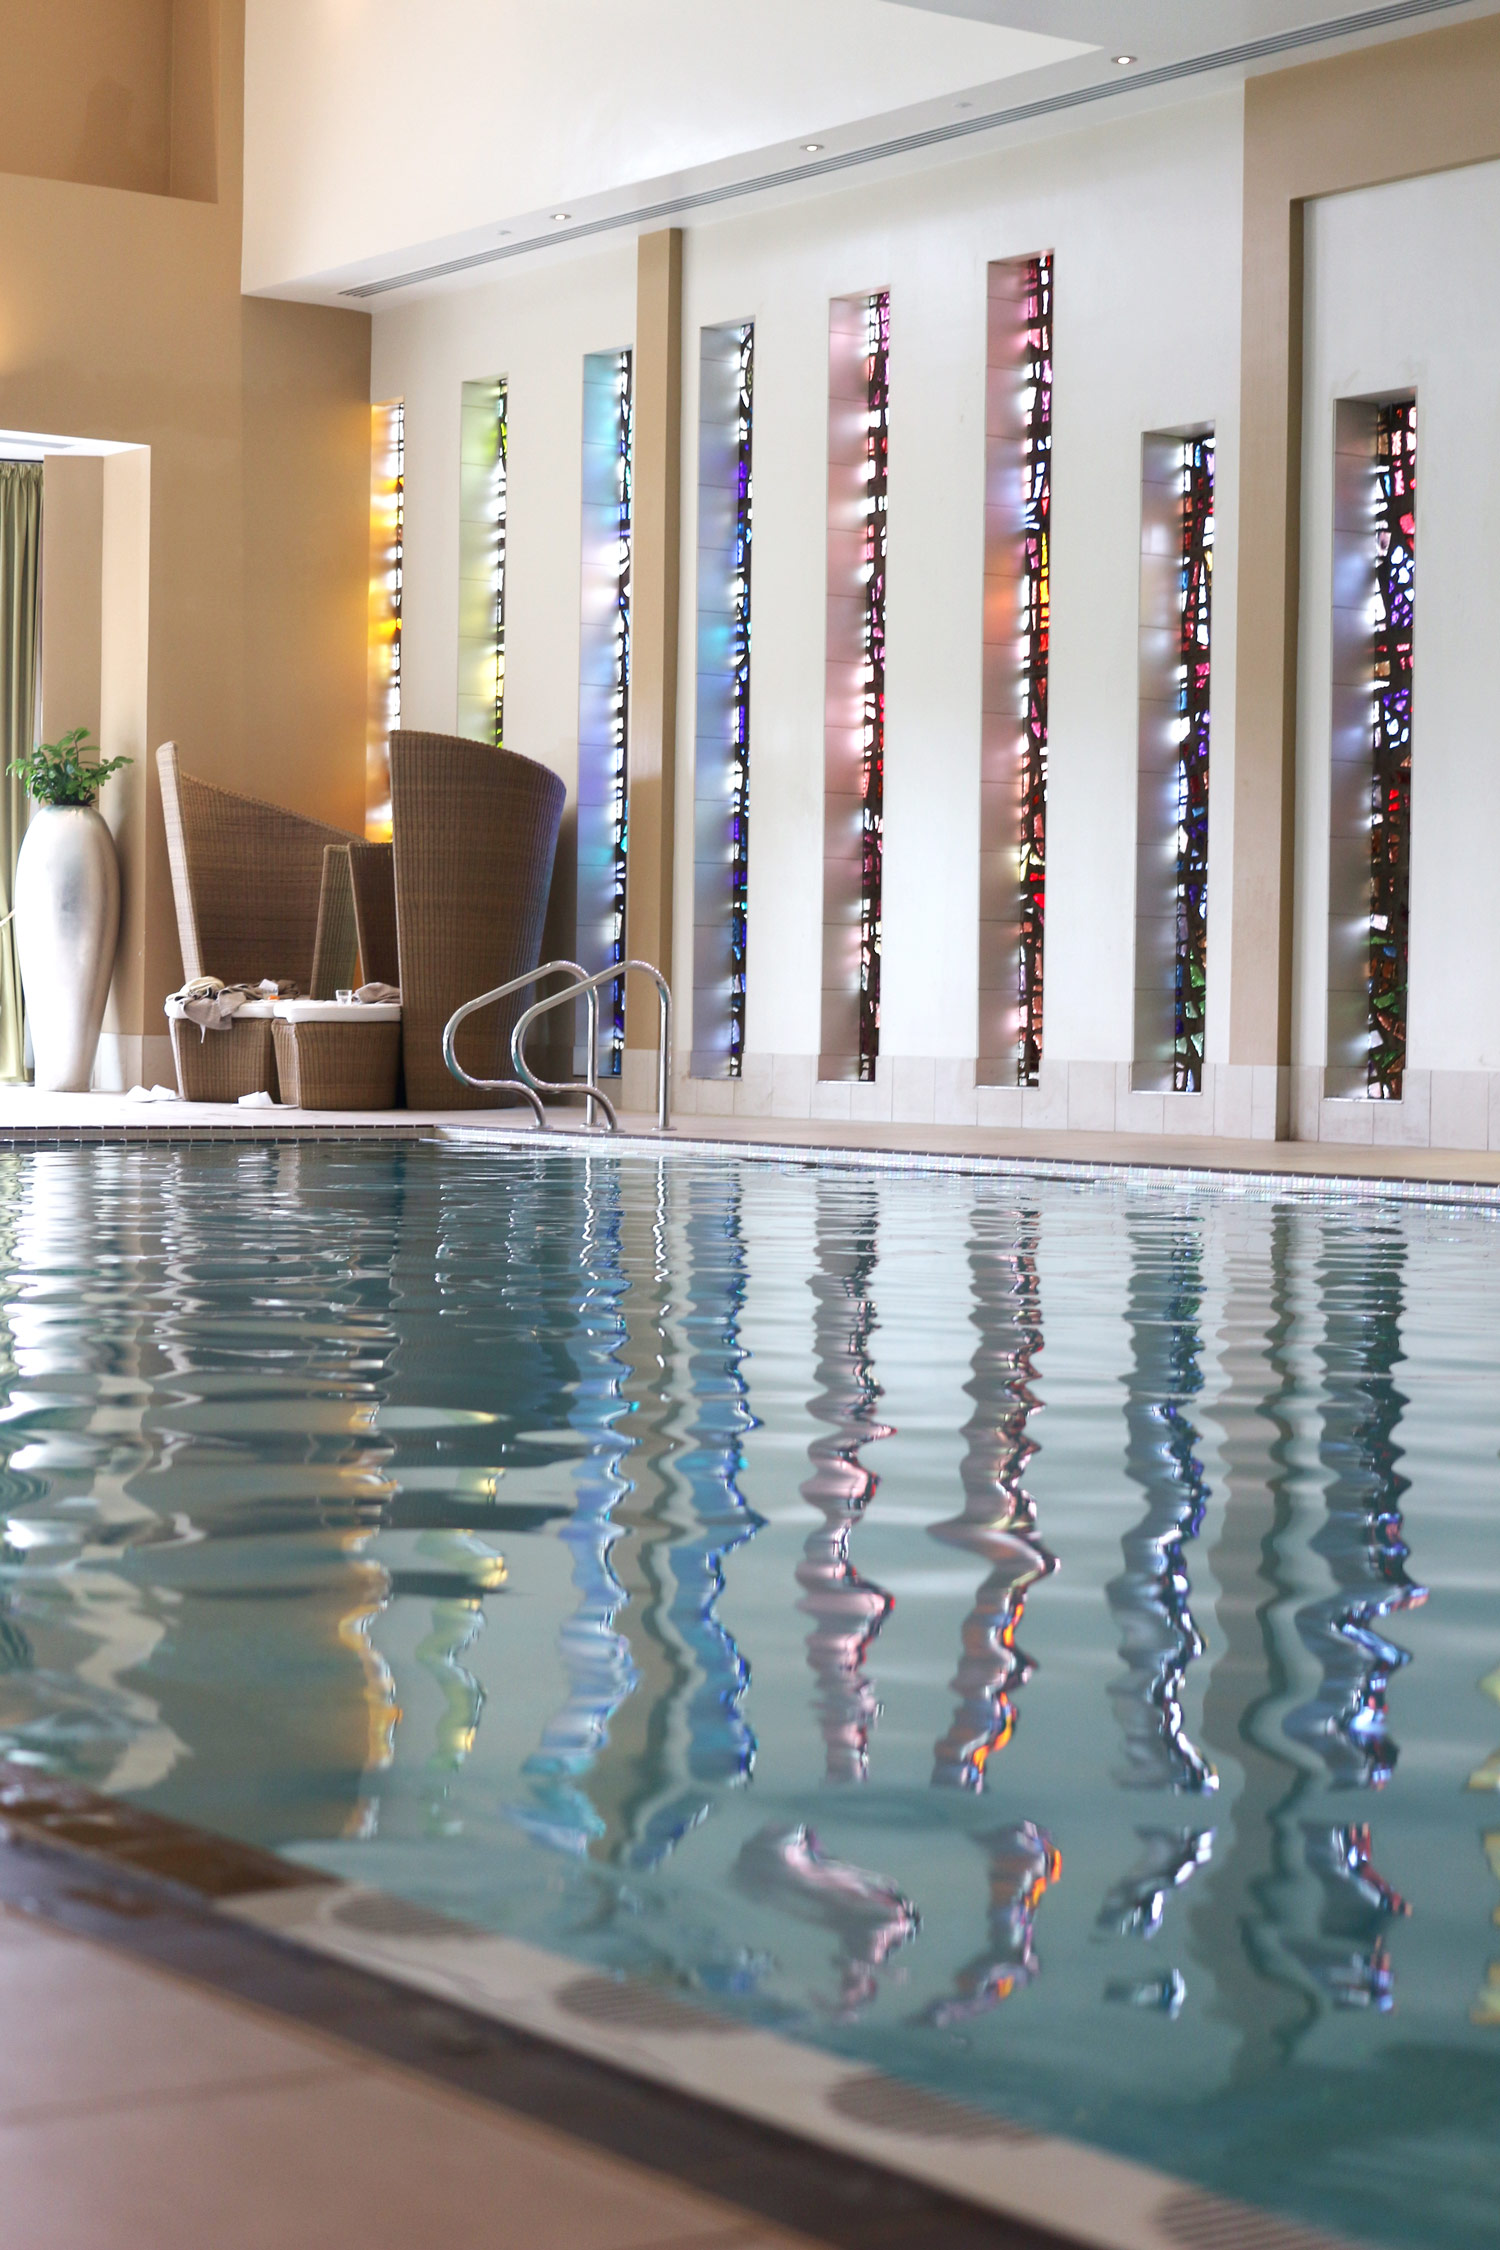 rockliffe-hall-hotel-spa-and-pool-review-north-east-3